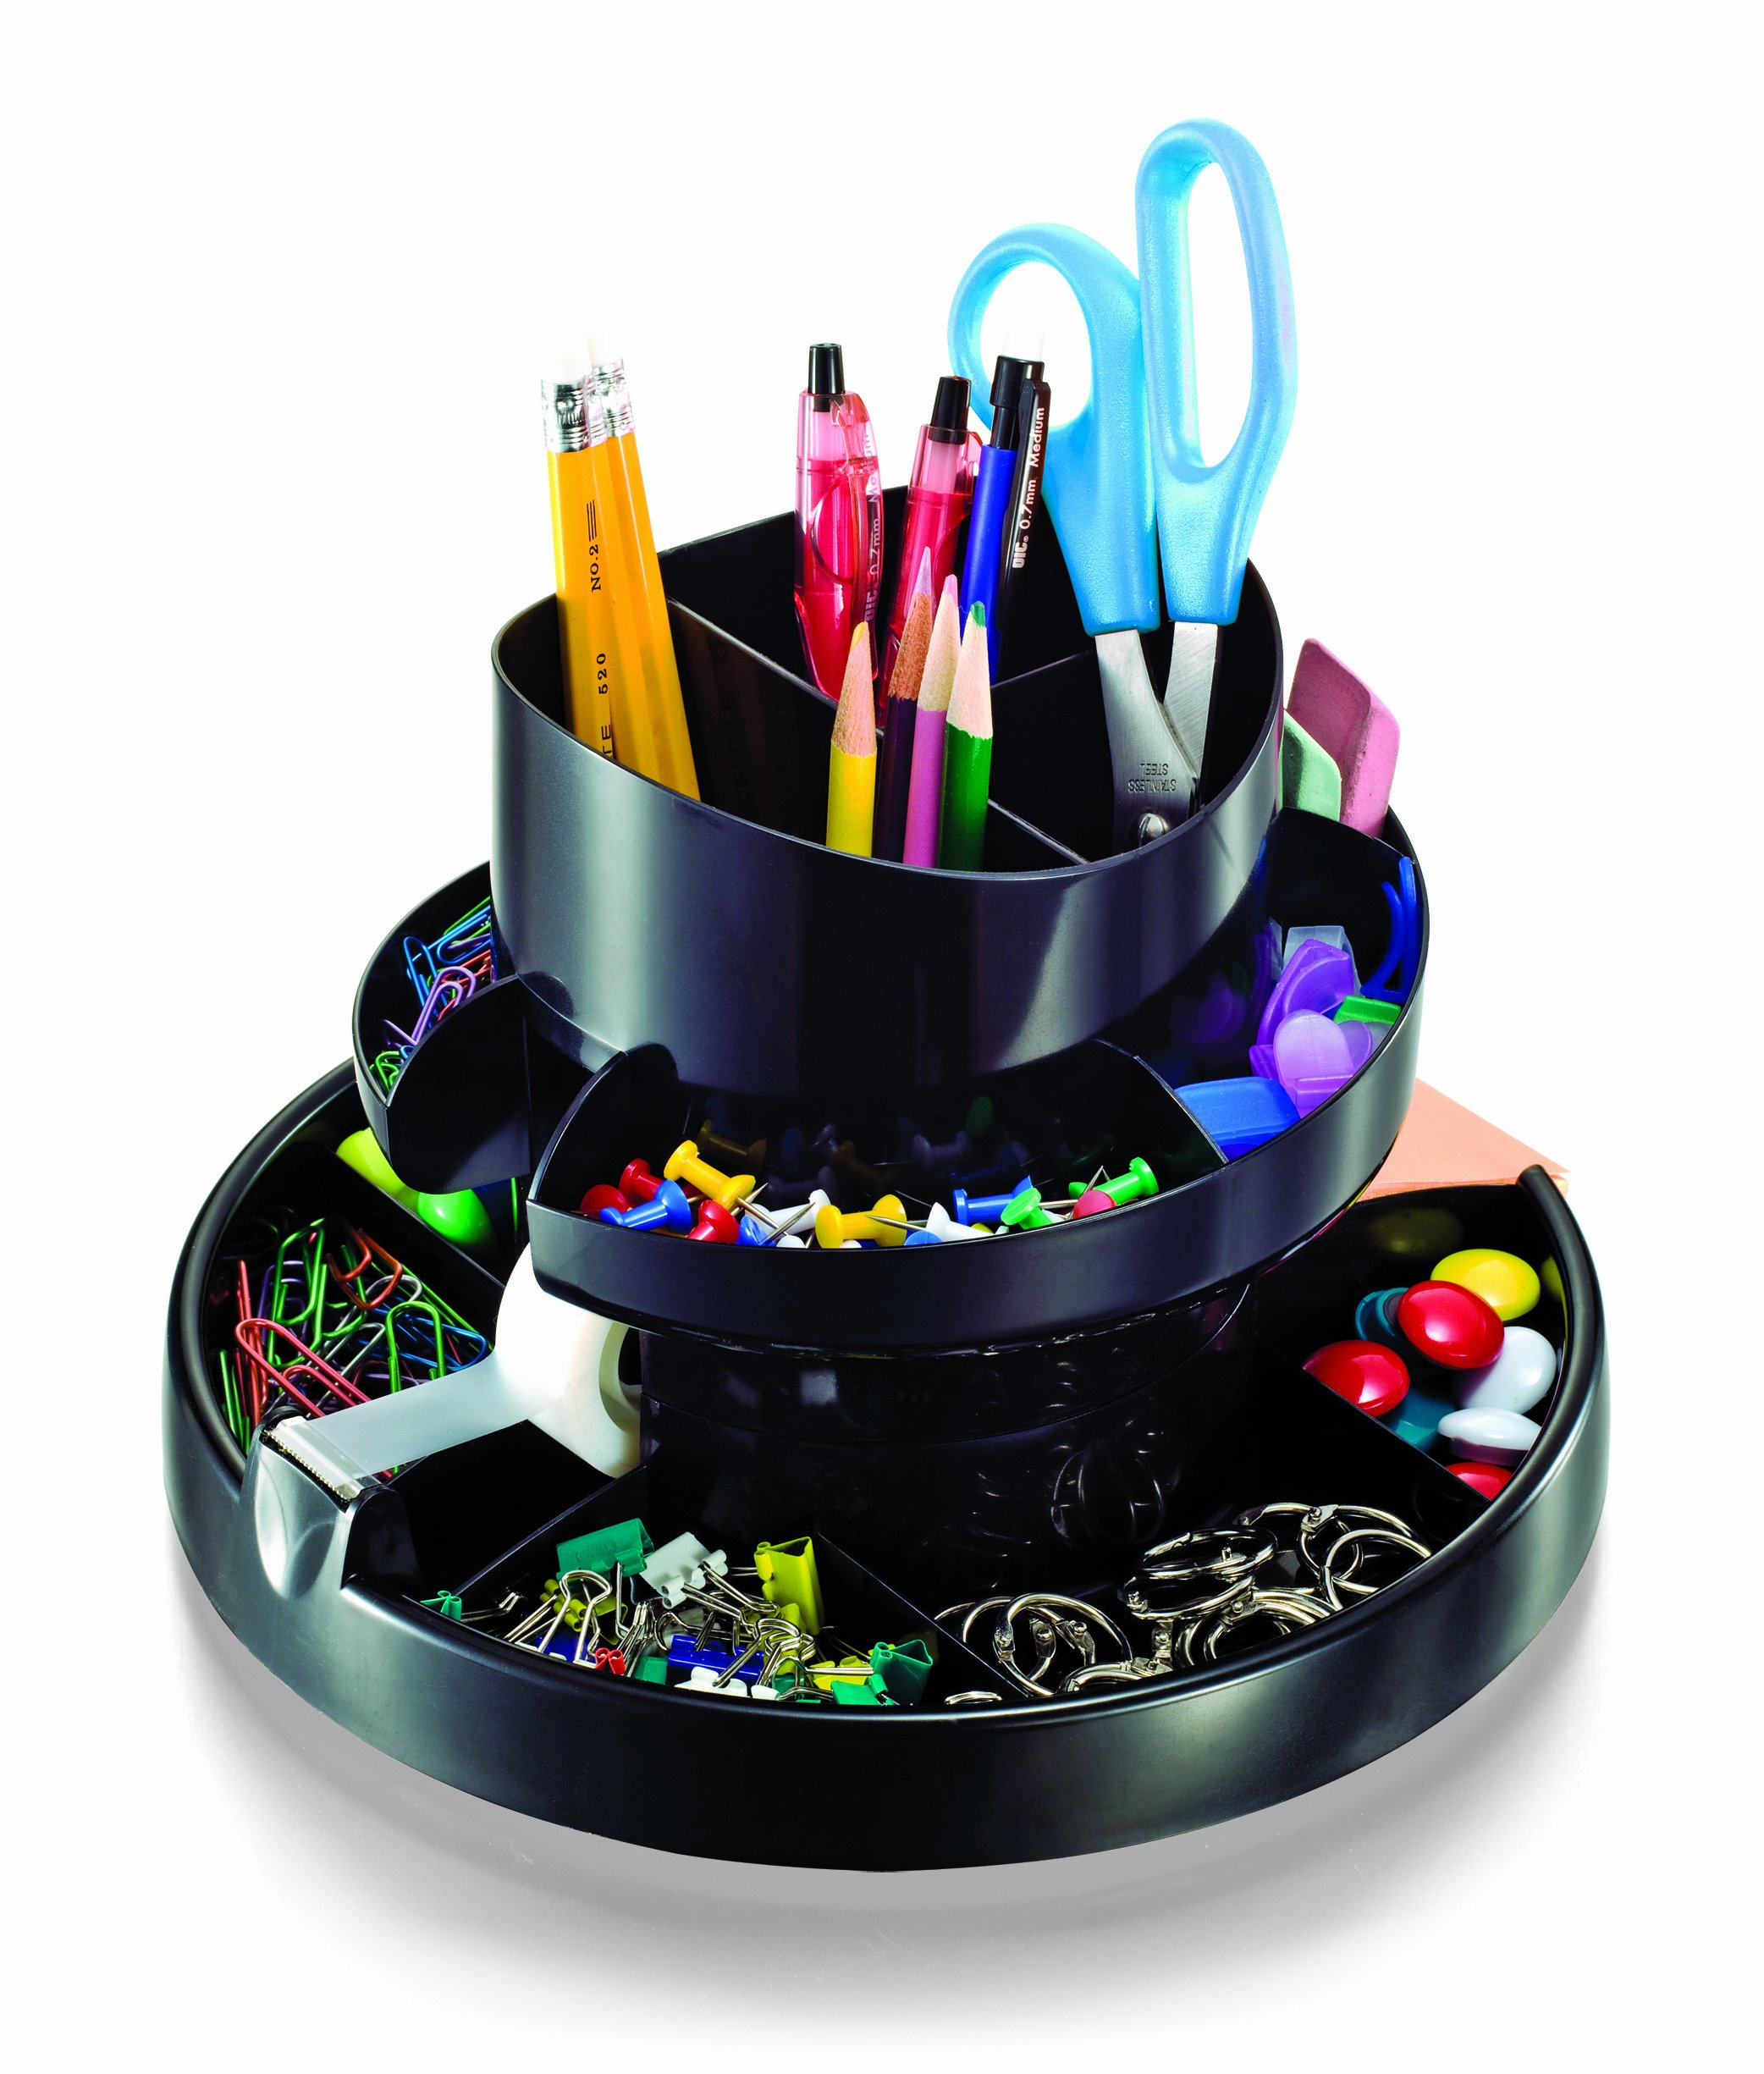 Officemate Deluxe Rotary Organizer, 16 Compartments, Recycled, Black (26255) by Officemate